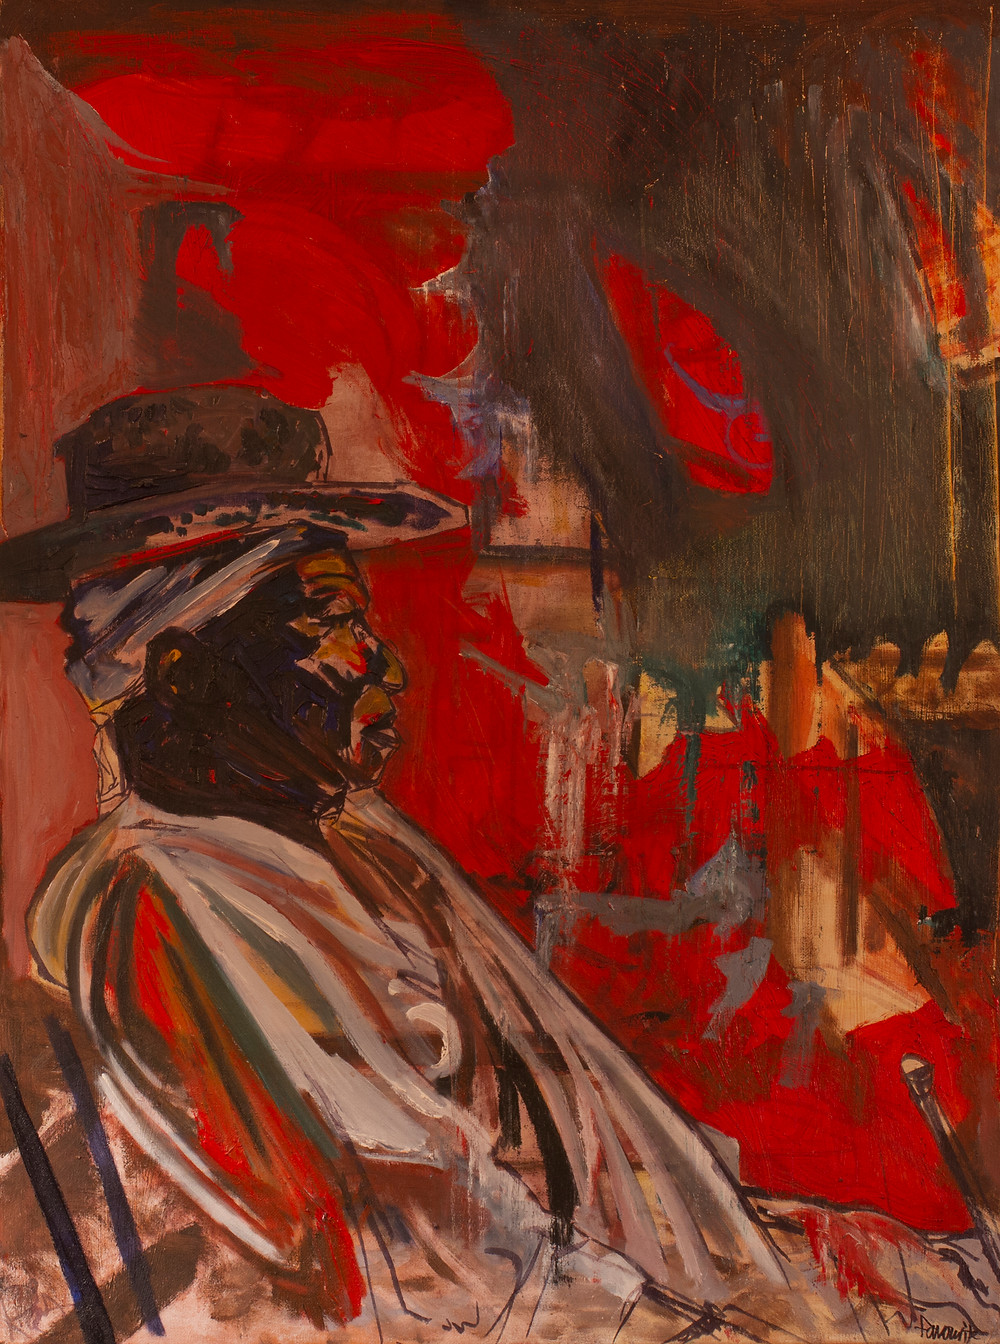 Voodoo Man by Ray Favourite, Oil on Canvas